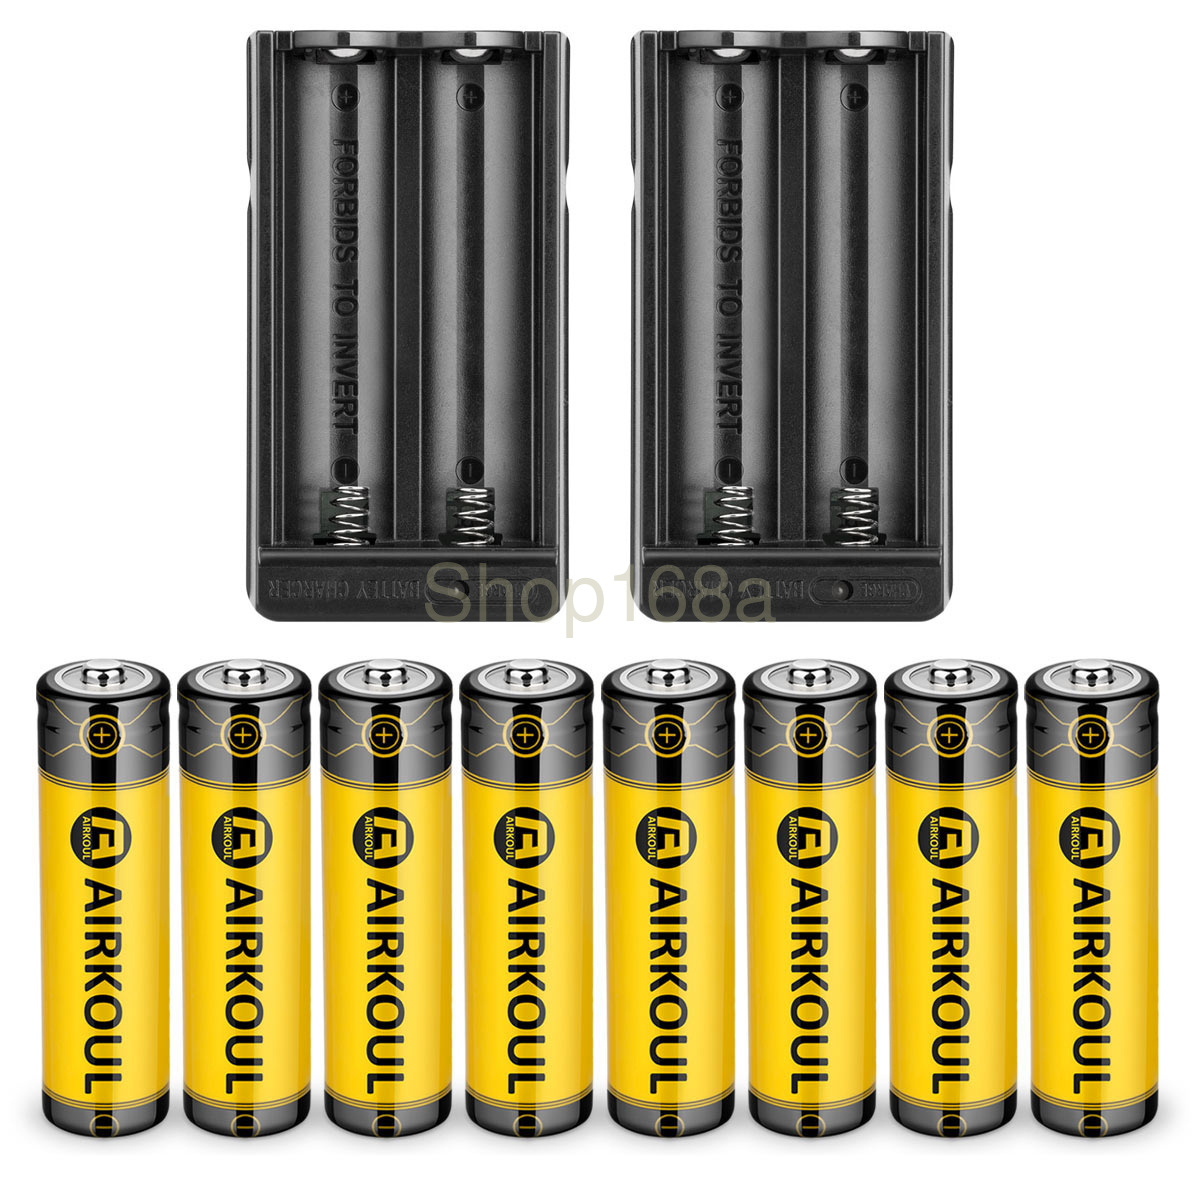 4X18650 3.7V 6800mAh Rechargeable Li-ion Battery Charger For Flashlight Torch